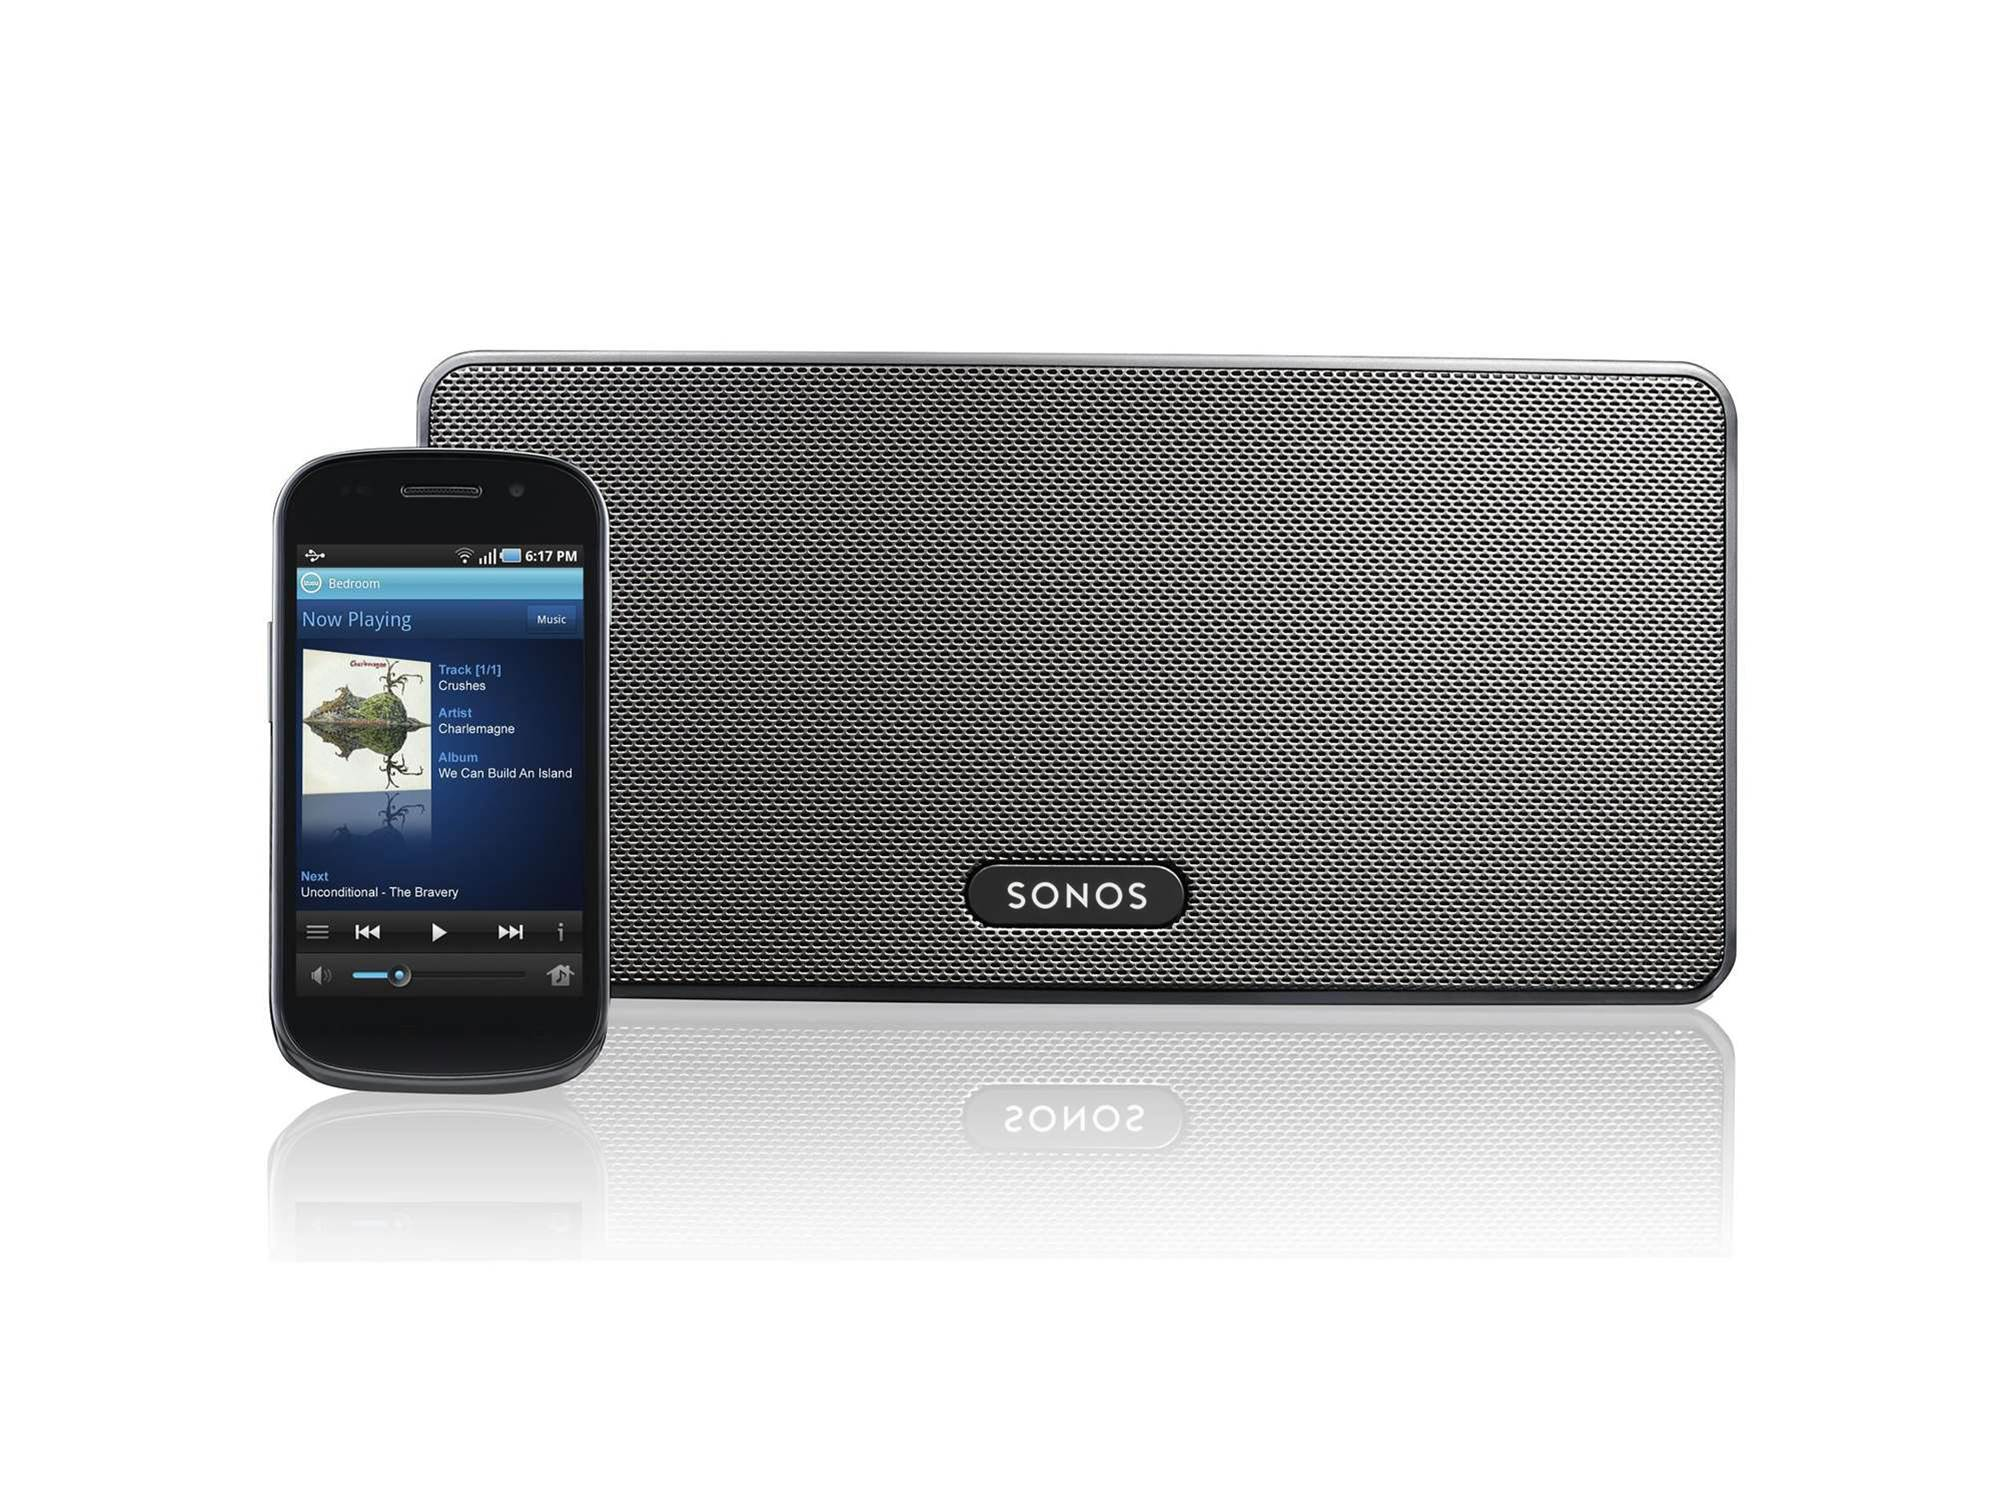 Sonos brings wireless speakers to the masses